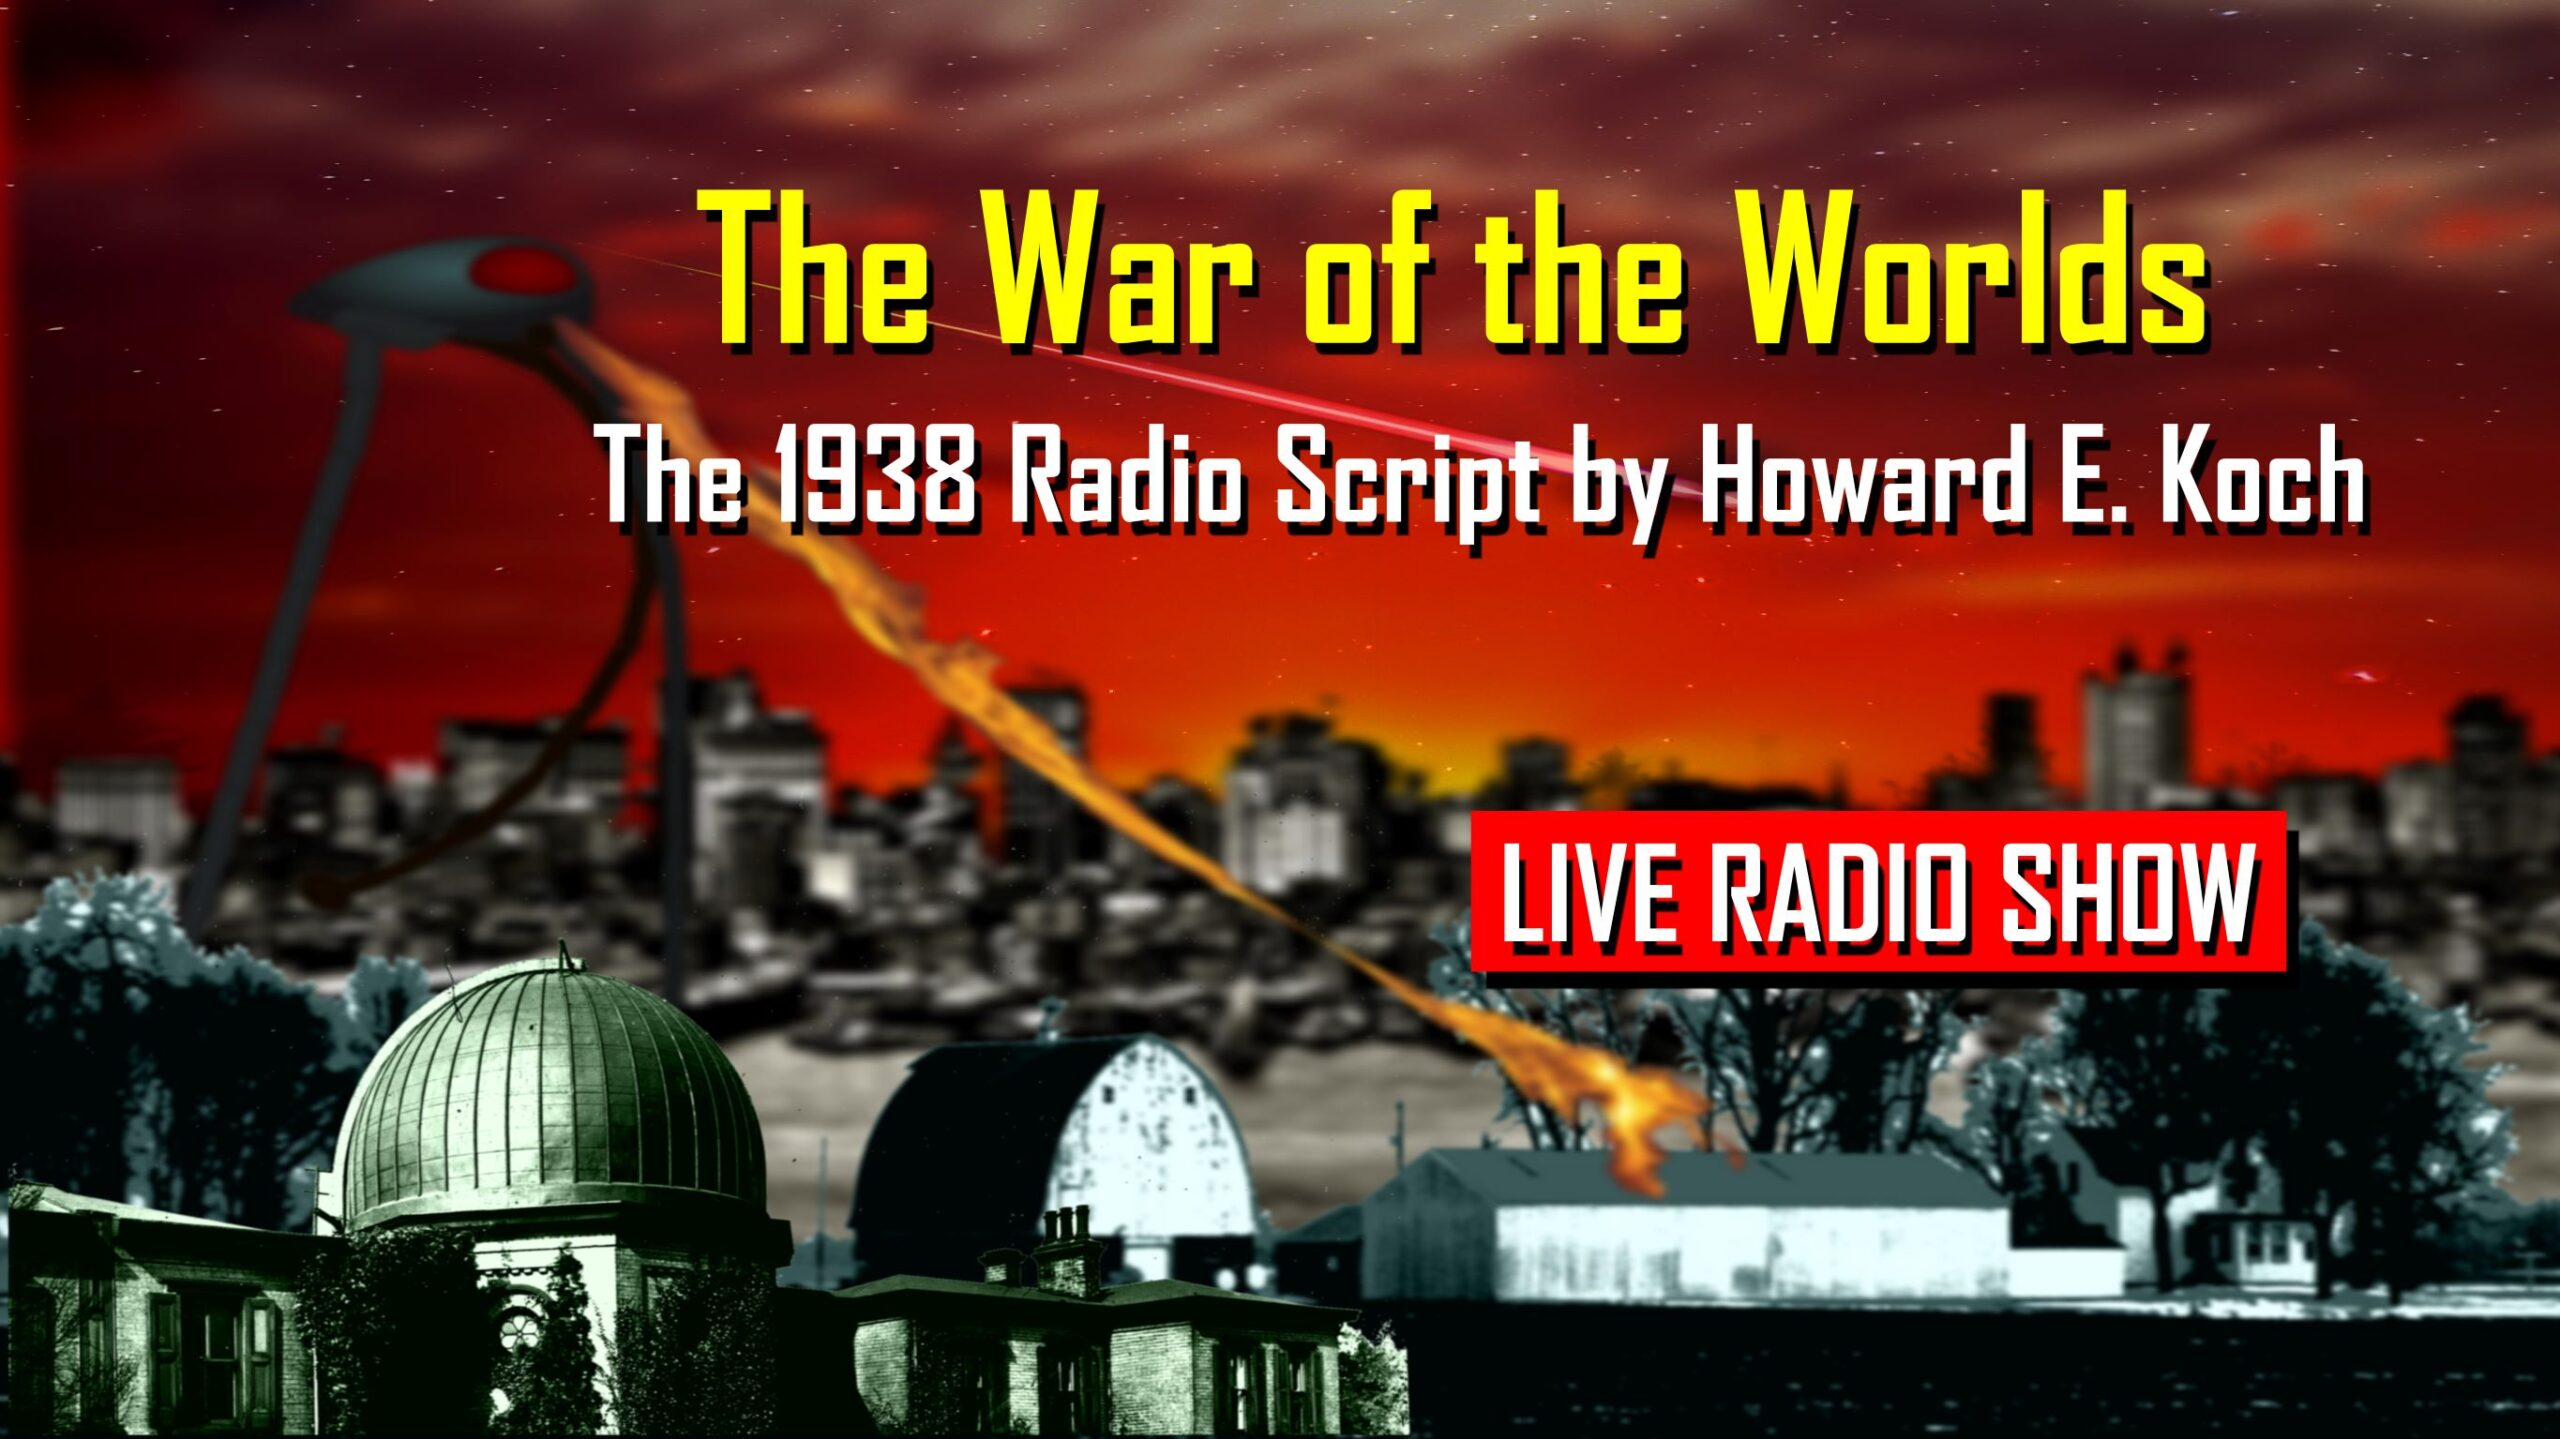 The War of the Worlds The 1938 Radio Script by Howard E. Koch LIVE RADIO SHOW